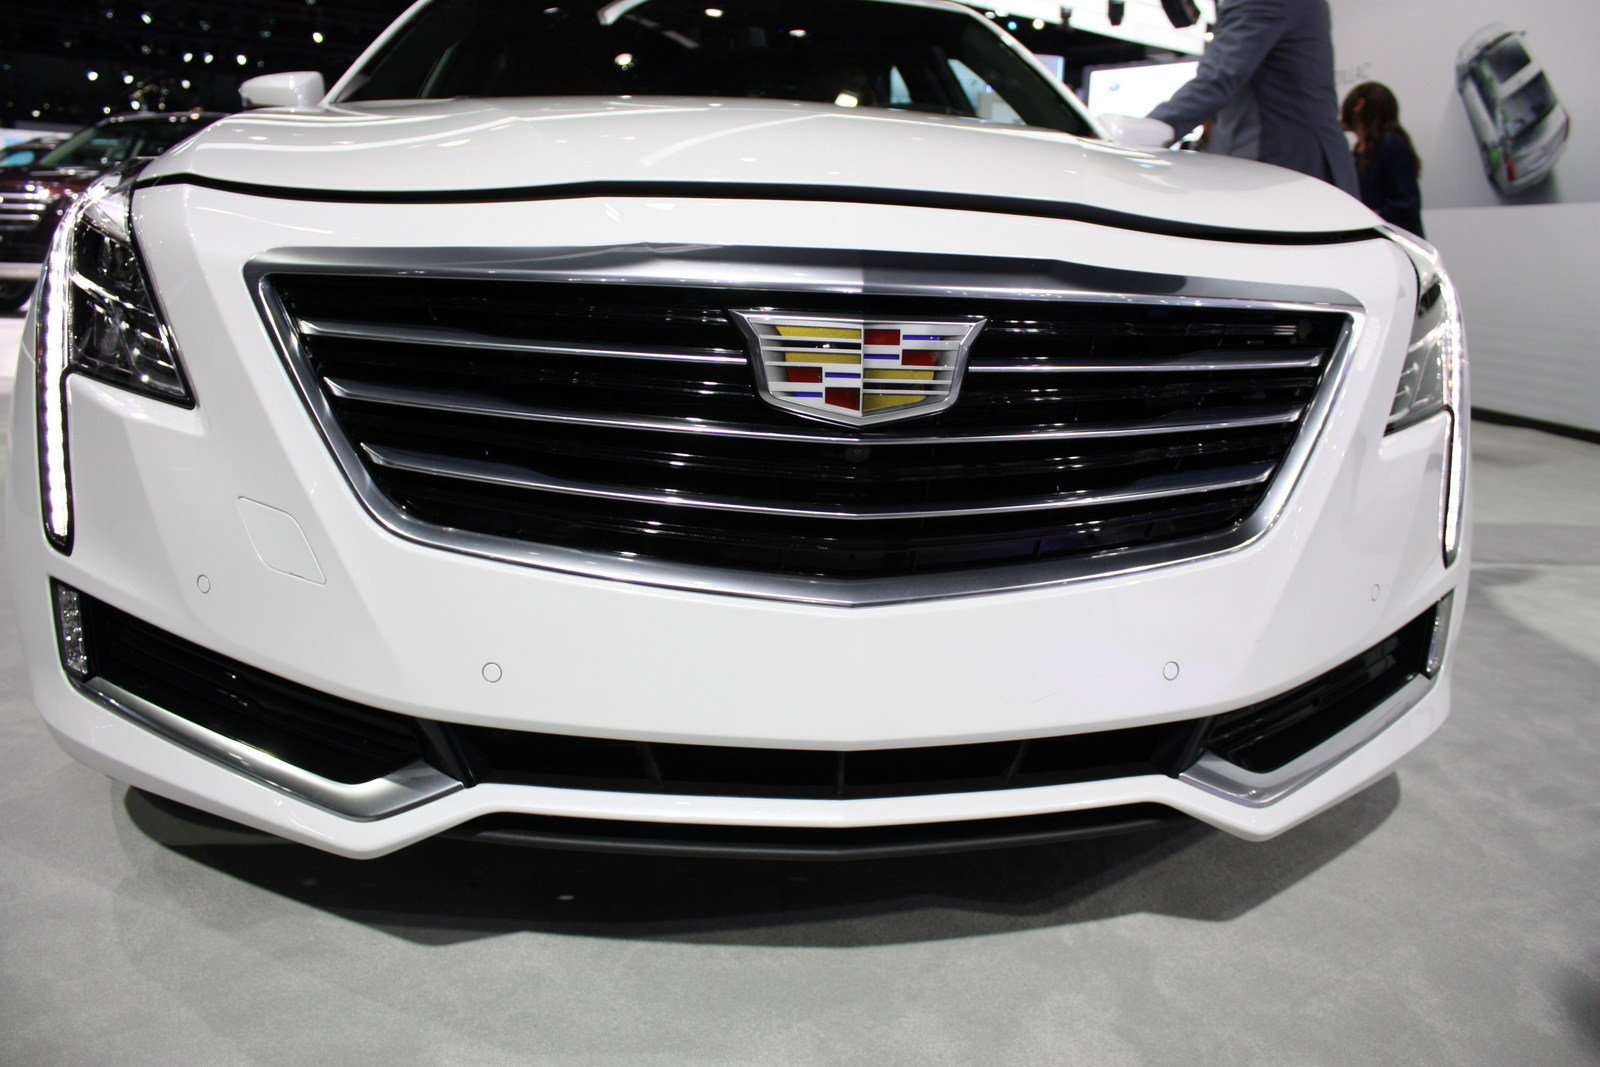 2017 cadillac ct6 plug in hybrid picture 696284 car review top speed. Black Bedroom Furniture Sets. Home Design Ideas